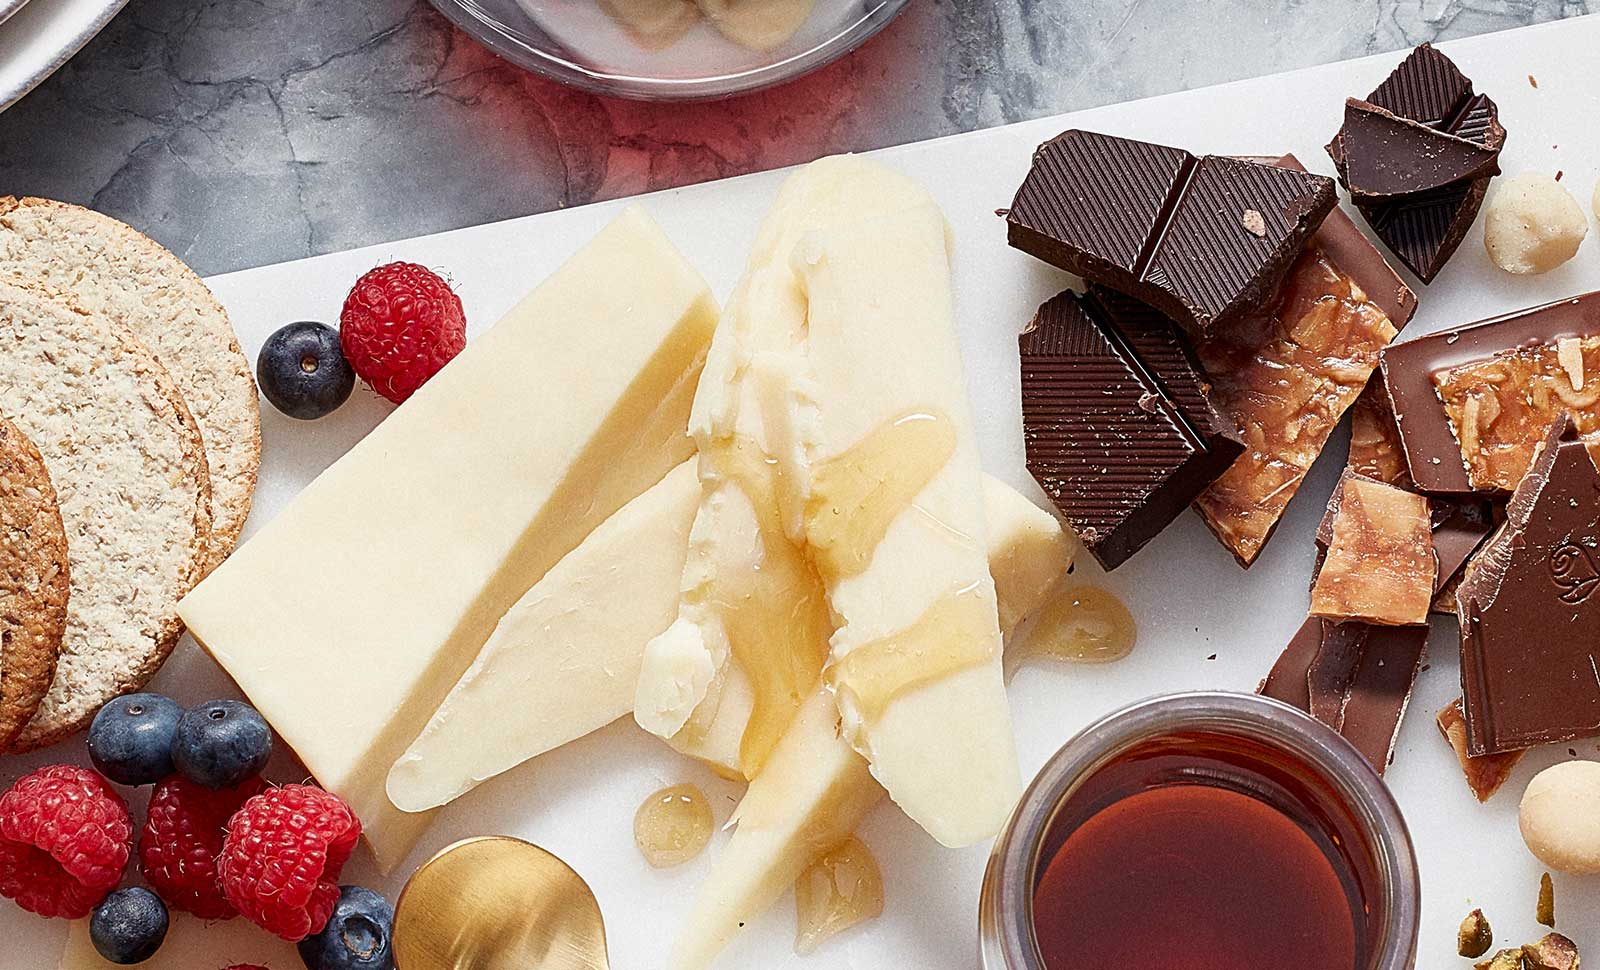 Pieces of artisan maple cheddar cheese served with fruit and pieces of dark chocolate.